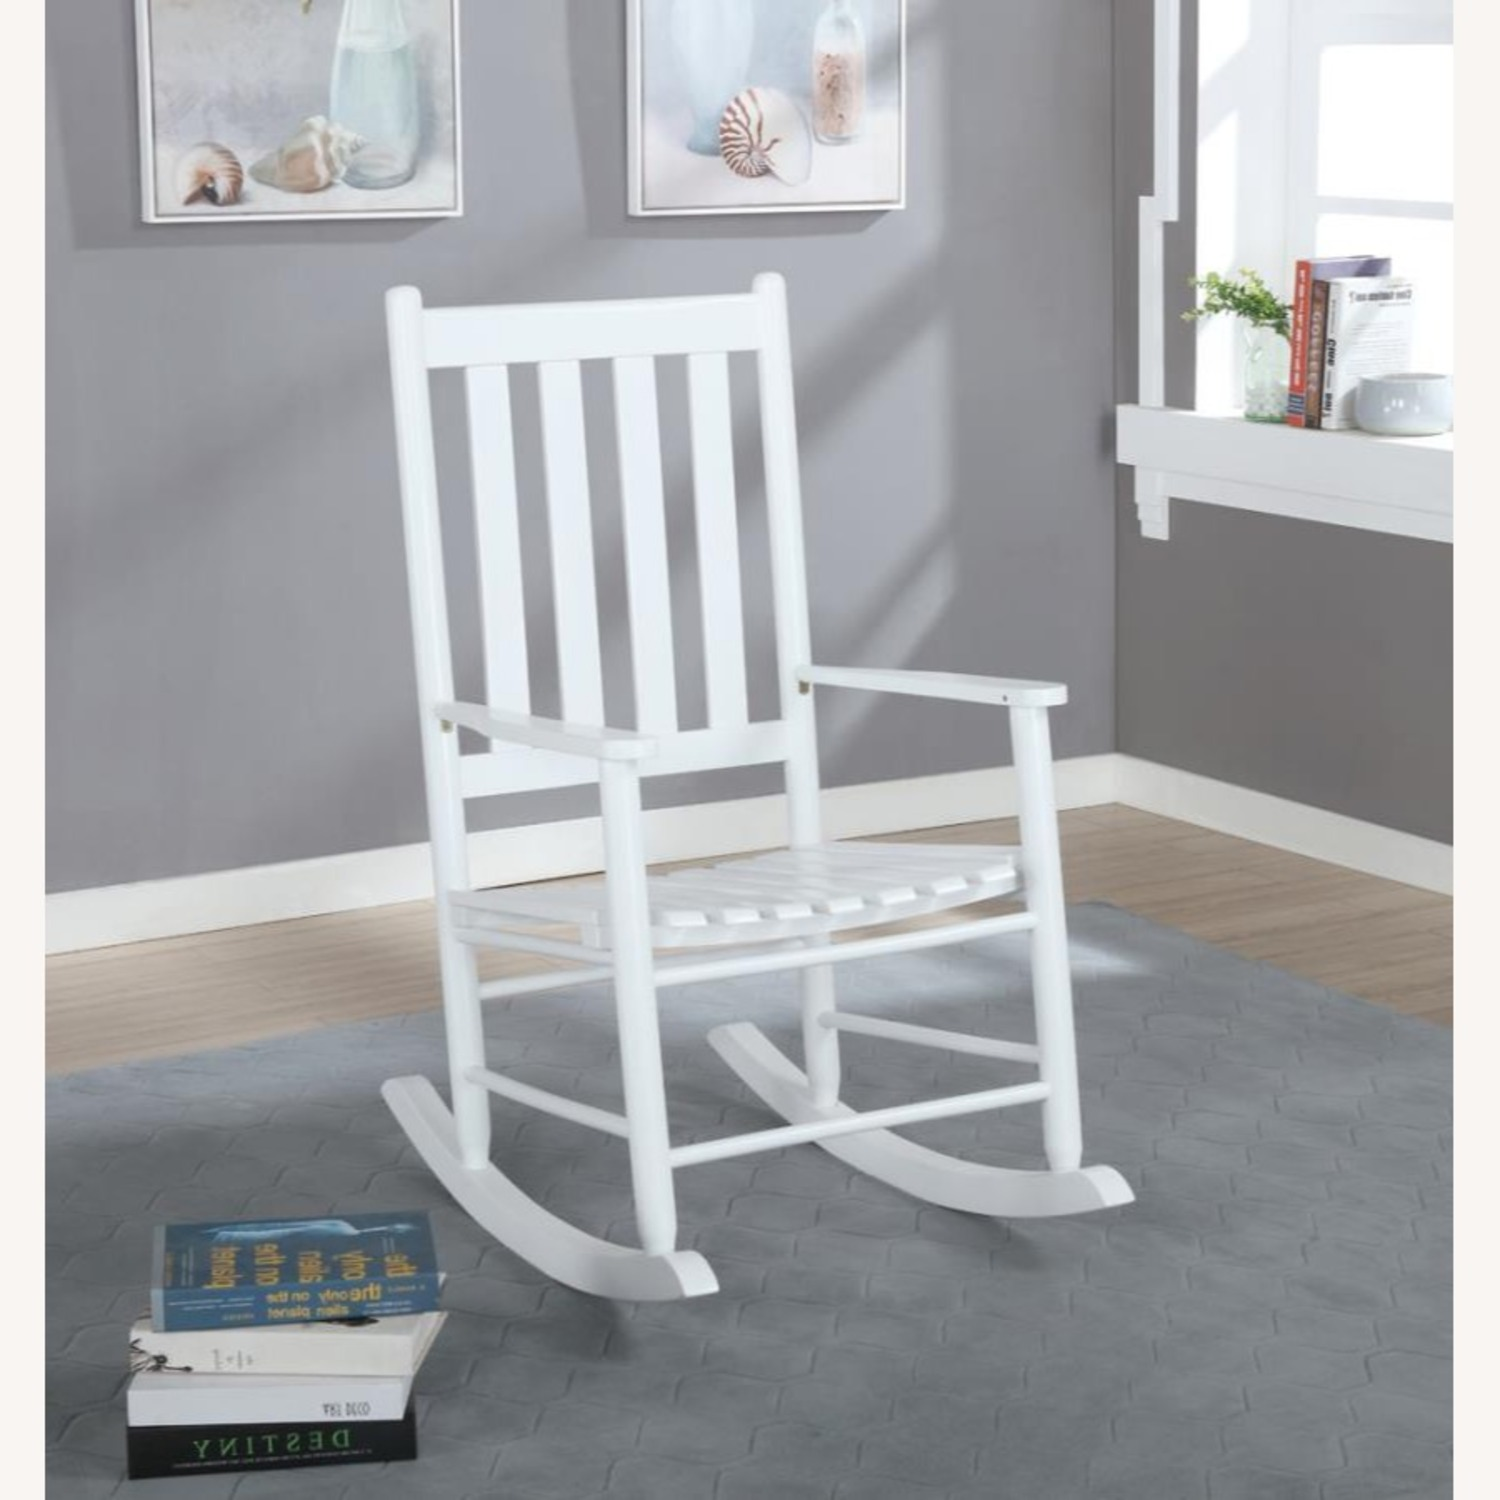 Rocking Chair In White Solid Acacia Wood Finish - image-2